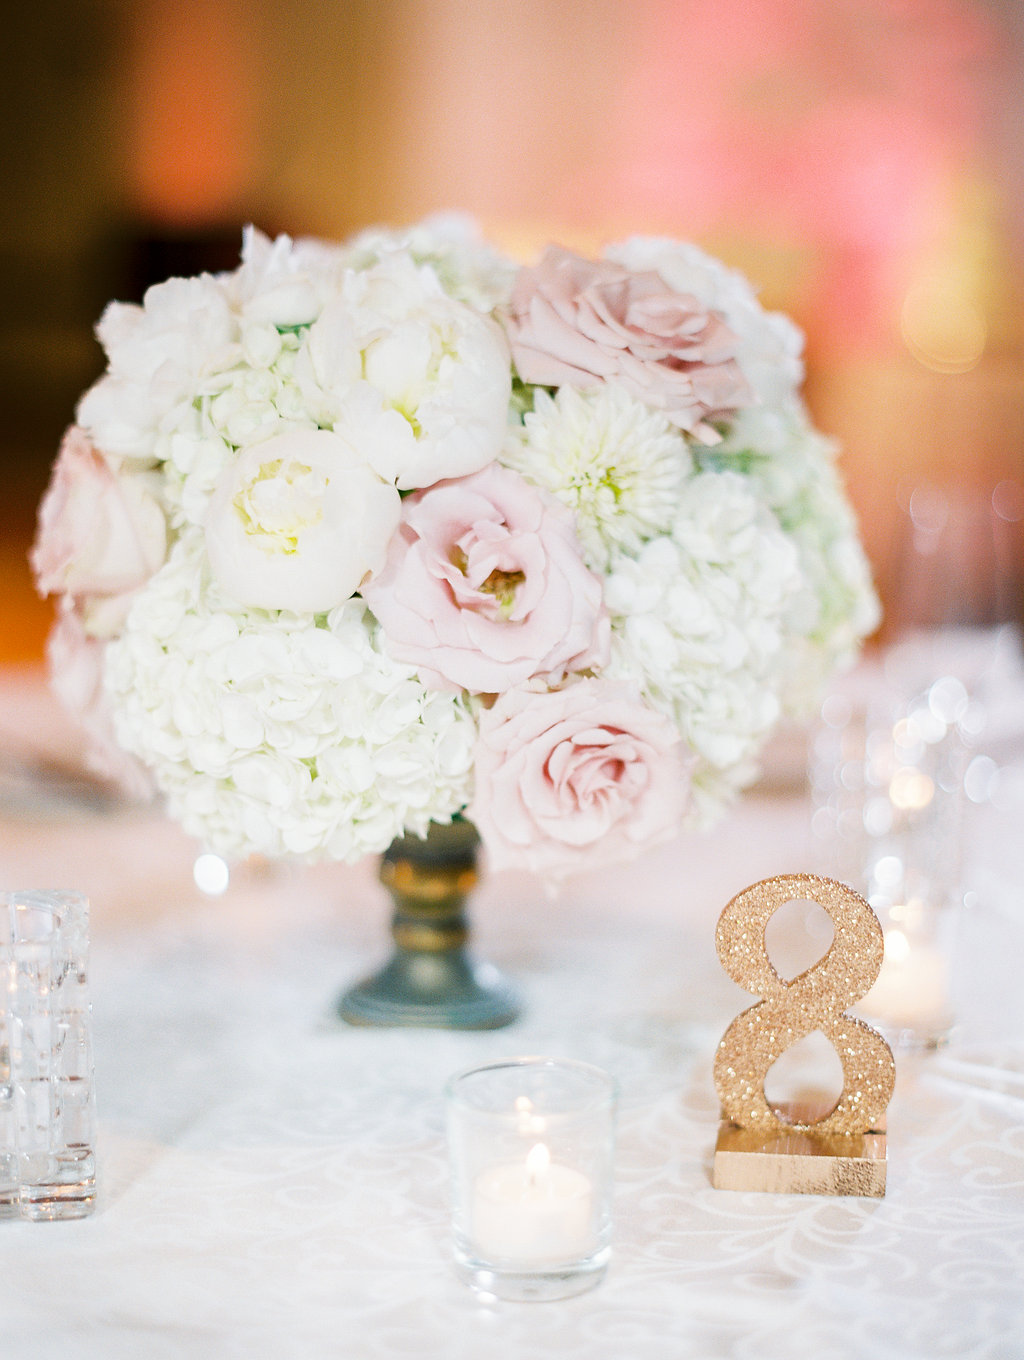 Centerpiece florals by Passion Roots | Ashley Goodwin Photography | Oahu, Hawaii